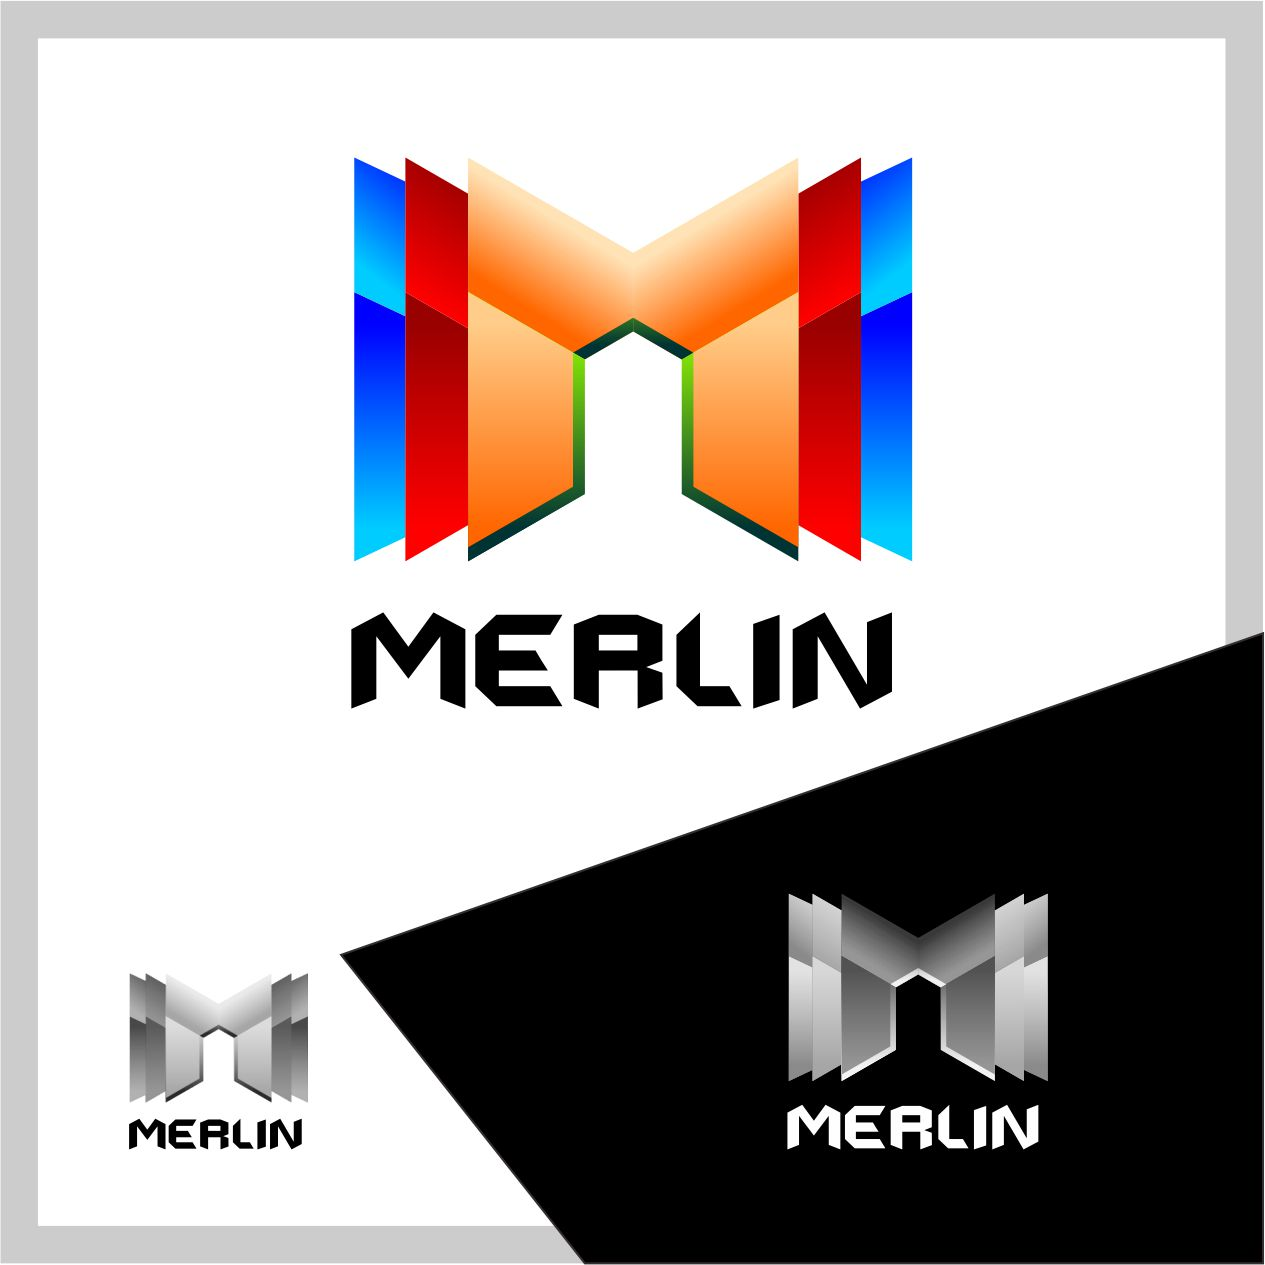 Logo Design by brown_hair - Entry No. 128 in the Logo Design Contest Imaginative Logo Design for Merlin.